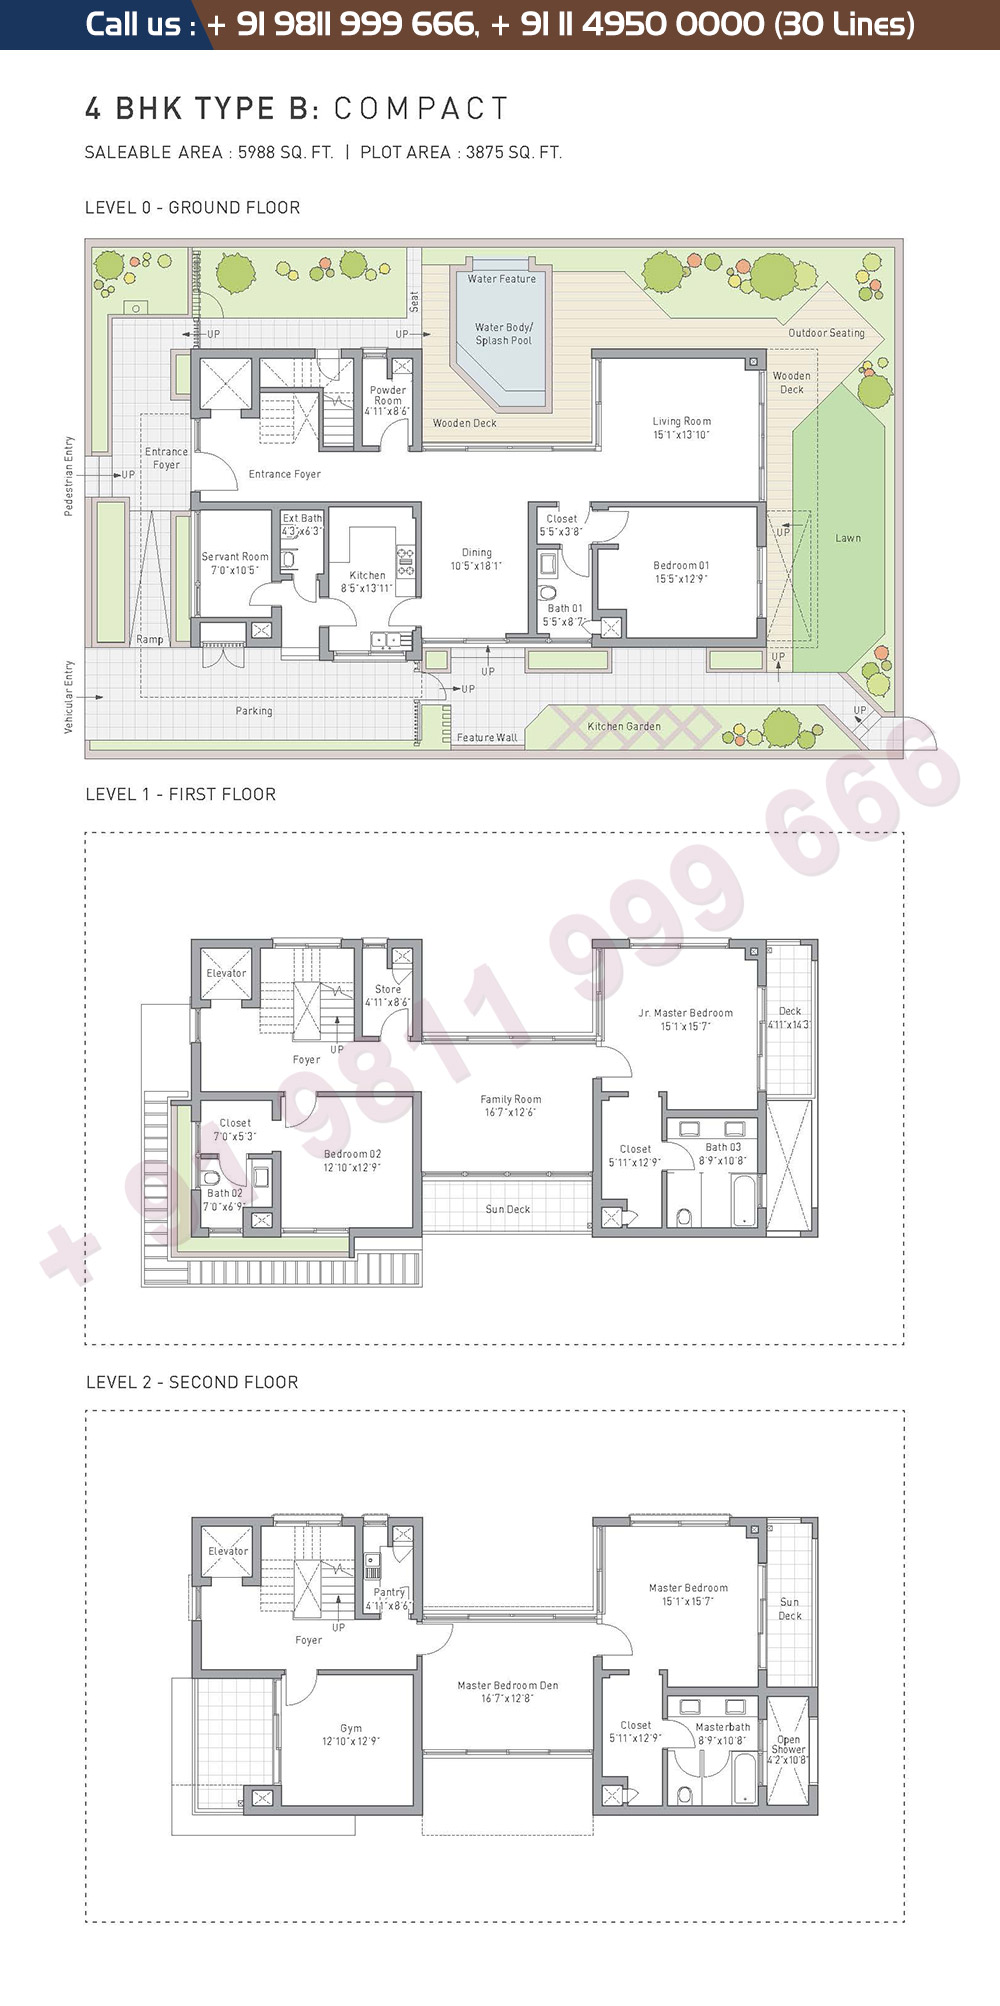 4 BHK Type B Compact: 5988 Sq.Ft.